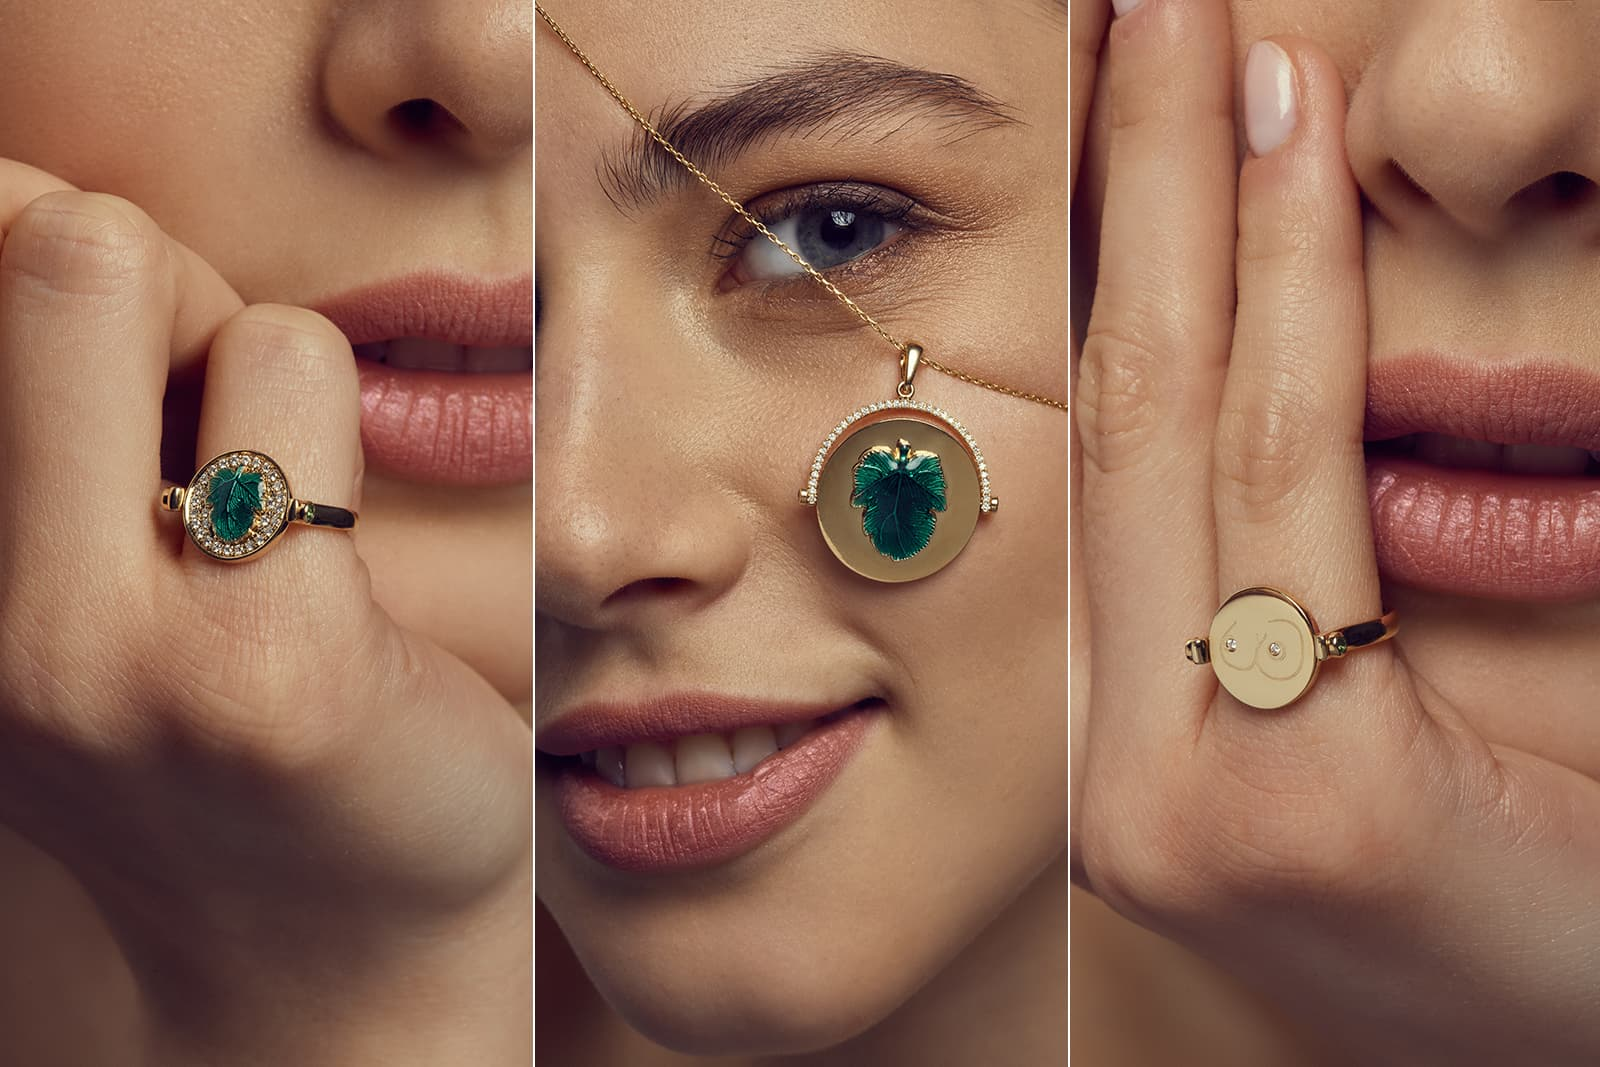 NeverNot Hide n Seek collection Ready 2 Tease ring and Ready 2 Discover pendant, both with diamonds and malachite in yellow gold